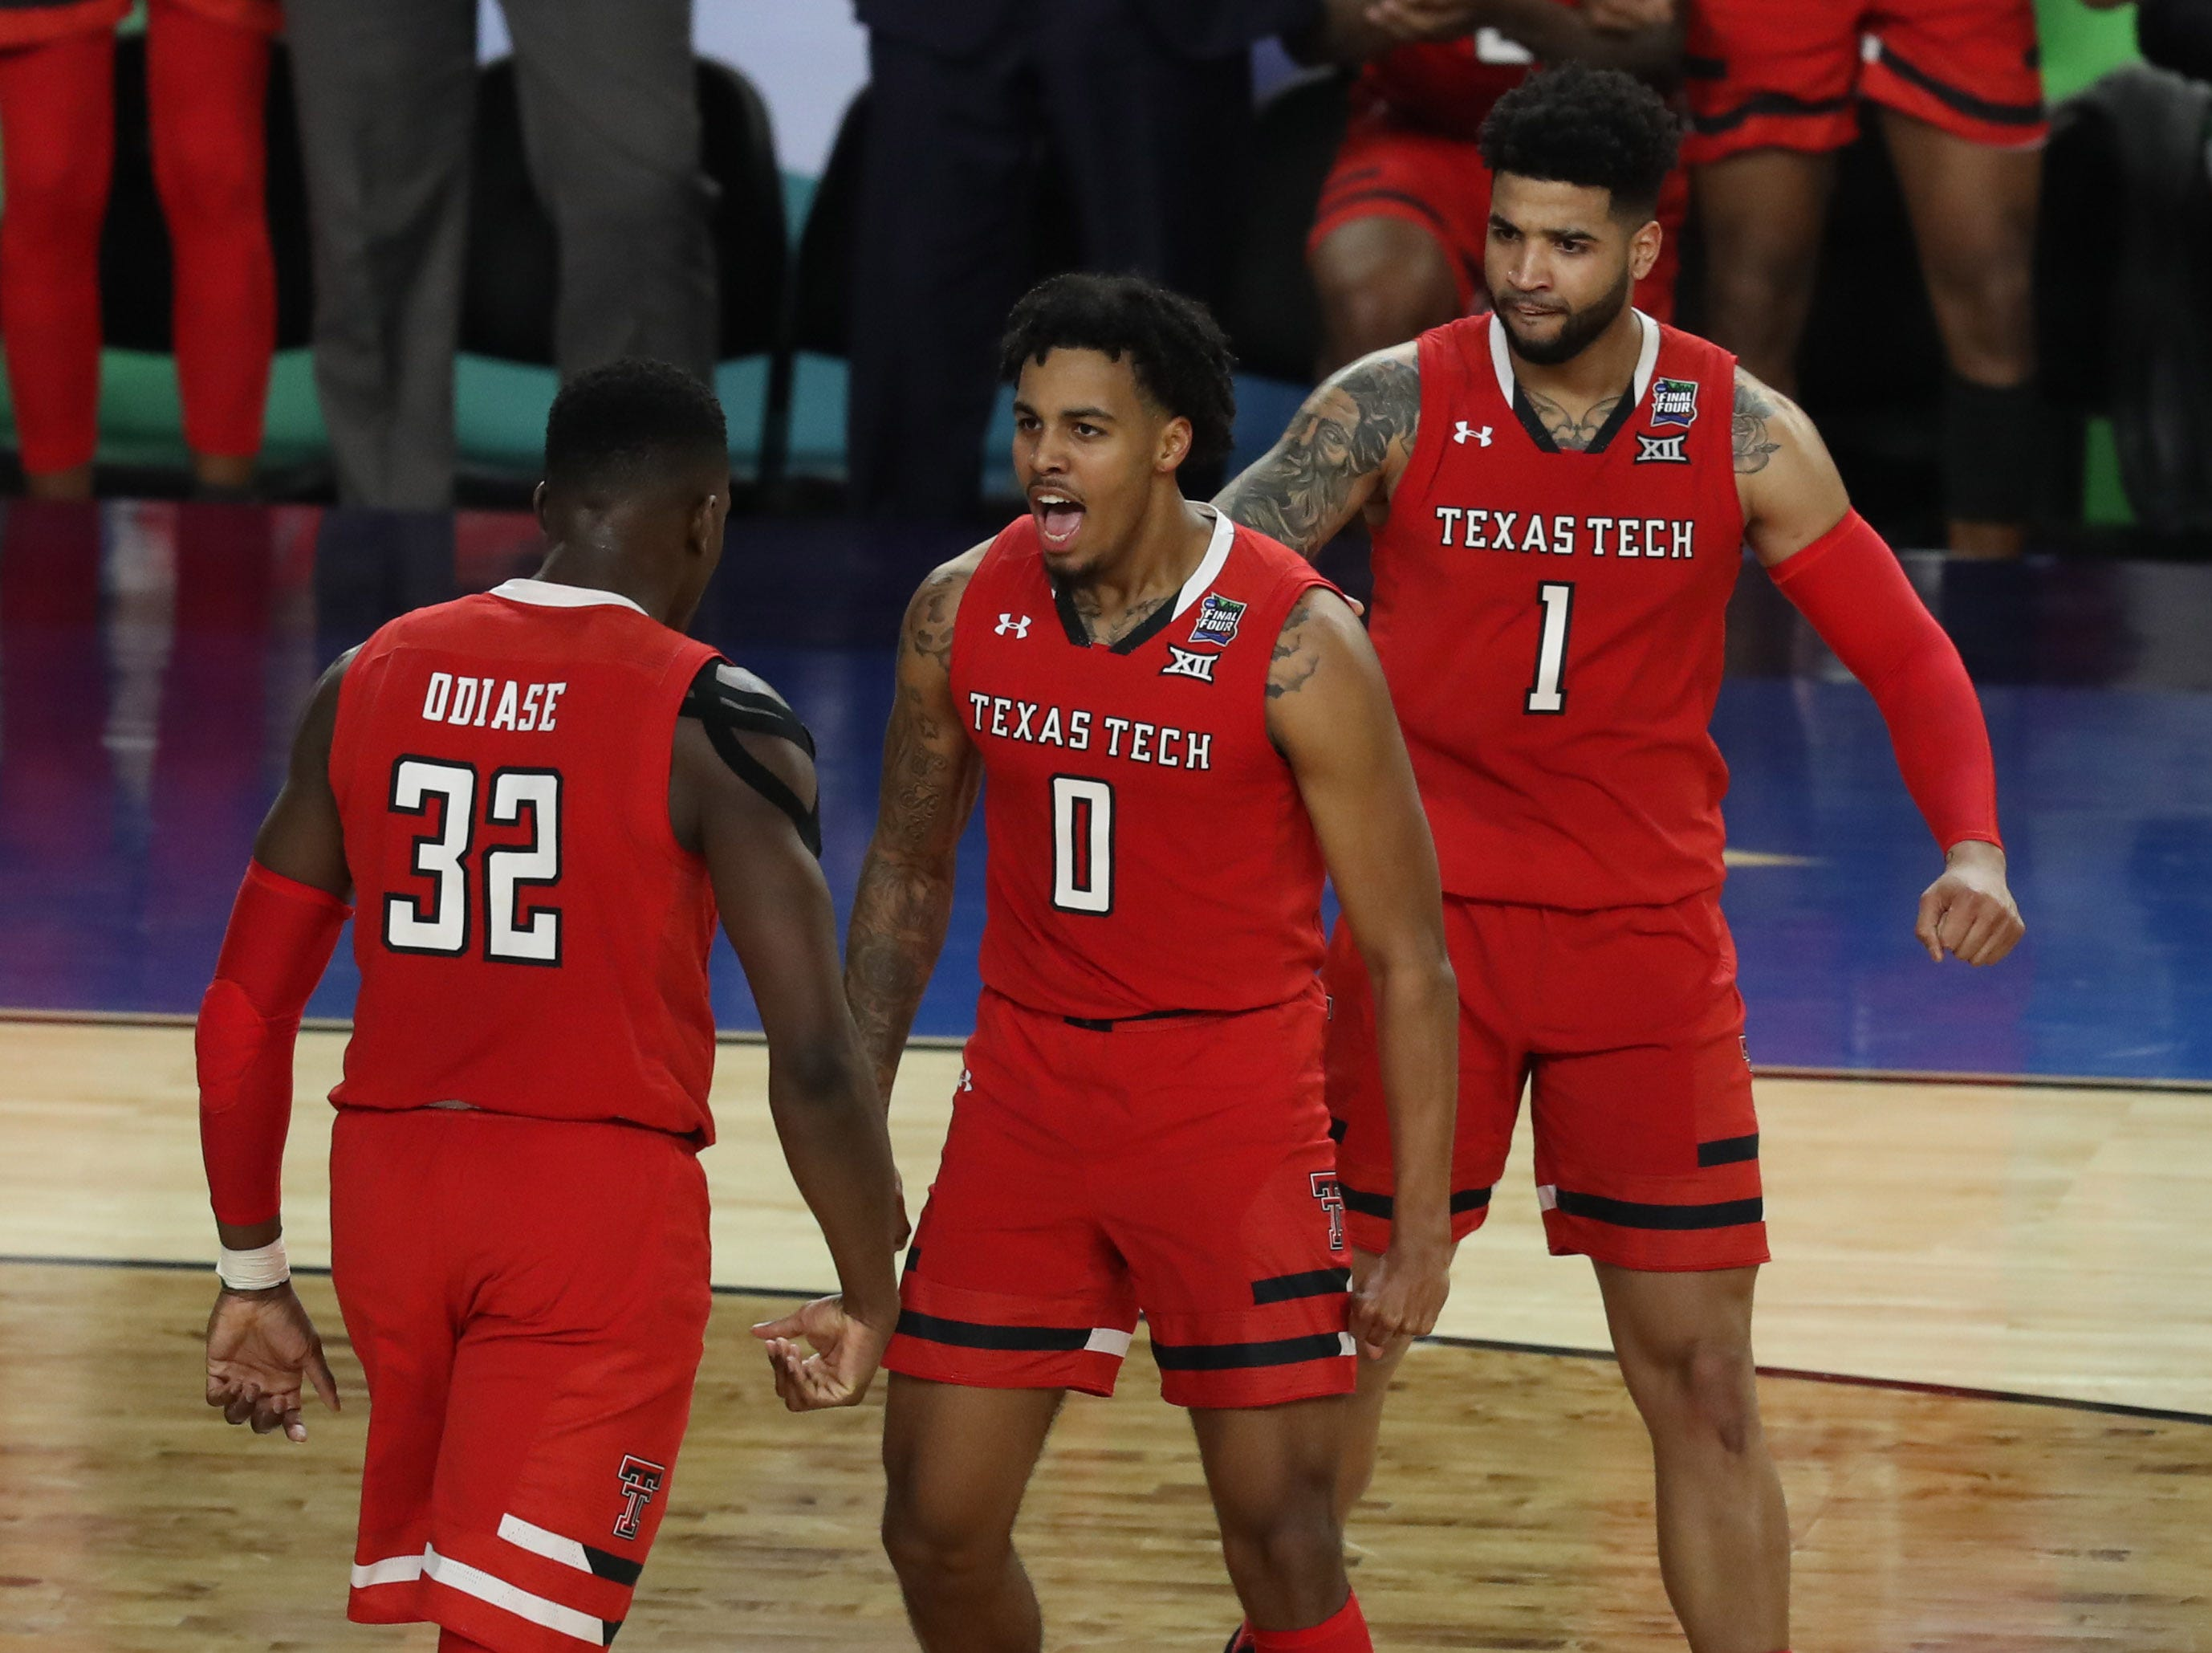 Apr 6, 2019; Minneapolis, MN, USA; Texas Tech Red Raiders guard Kyler Edwards (0) celebrates with Texas Tech Red Raiders center Norense Odiase (32) after drawing a foul during the second half against the Michigan State Spartans in the semifinals of the 2019 men's Final Four at US Bank Stadium. Mandatory Credit: Brace Hemmelgarn-USA TODAY Sports